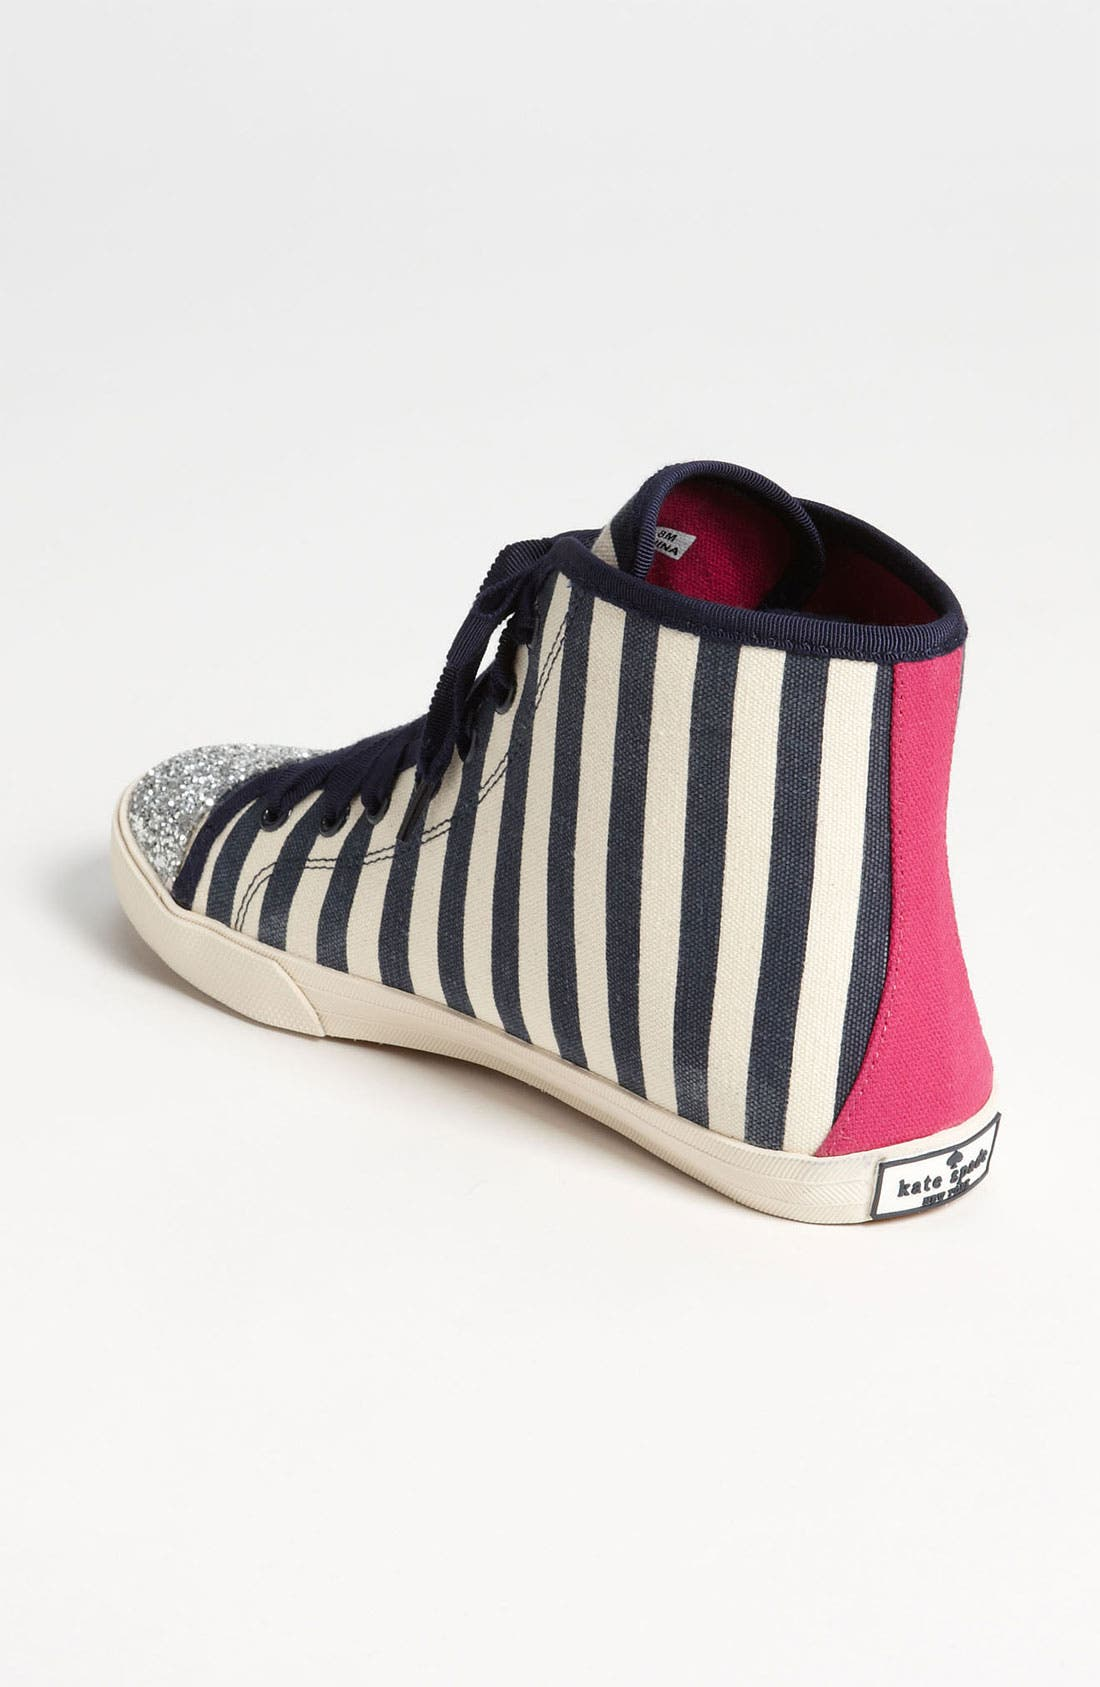 Alternate Image 2  - kate spade new york 'lorna' sneaker